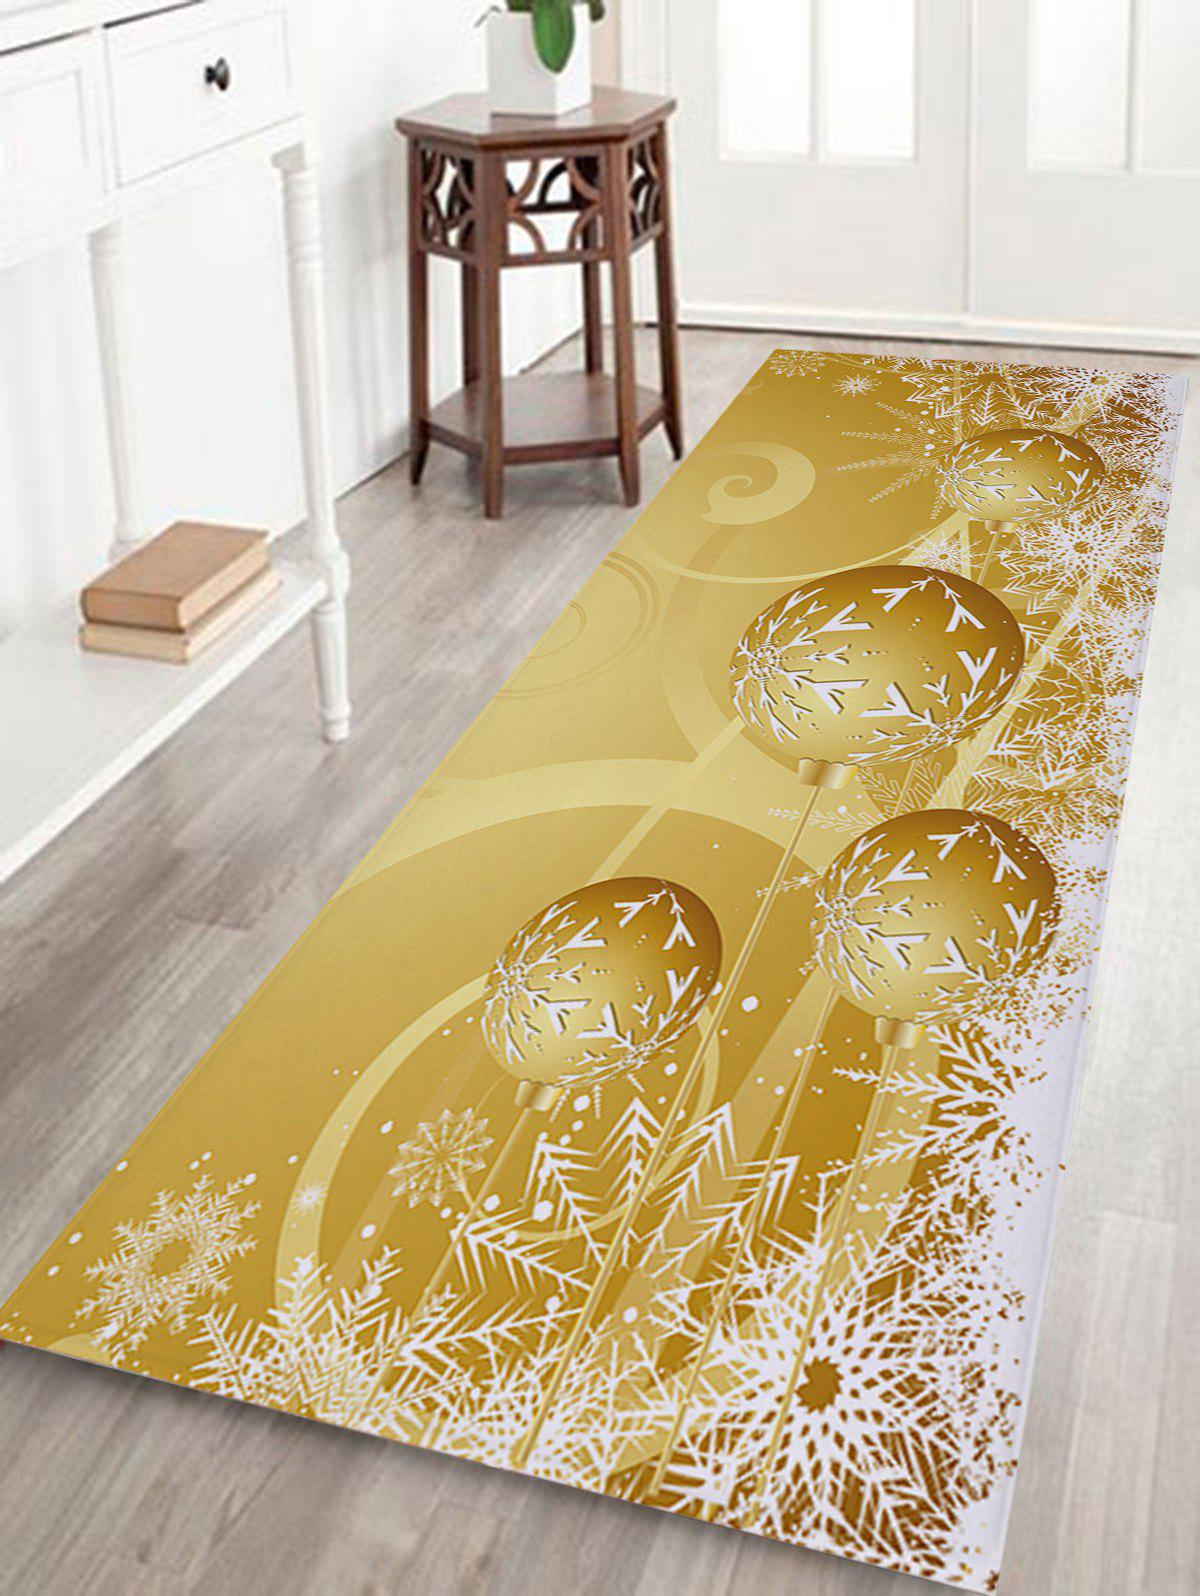 Christmas Balls Snowflake Print Nonslip Coral Fleece Bath MatHOME<br><br>Size: W24 INCH * L71 INCH; Color: GOLDEN; Products Type: Bath rugs; Materials: Coral FLeece; Pattern: Ball,Snowflake; Style: Festival; Shape: Rectangular; Package Contents: 1 x Rug;